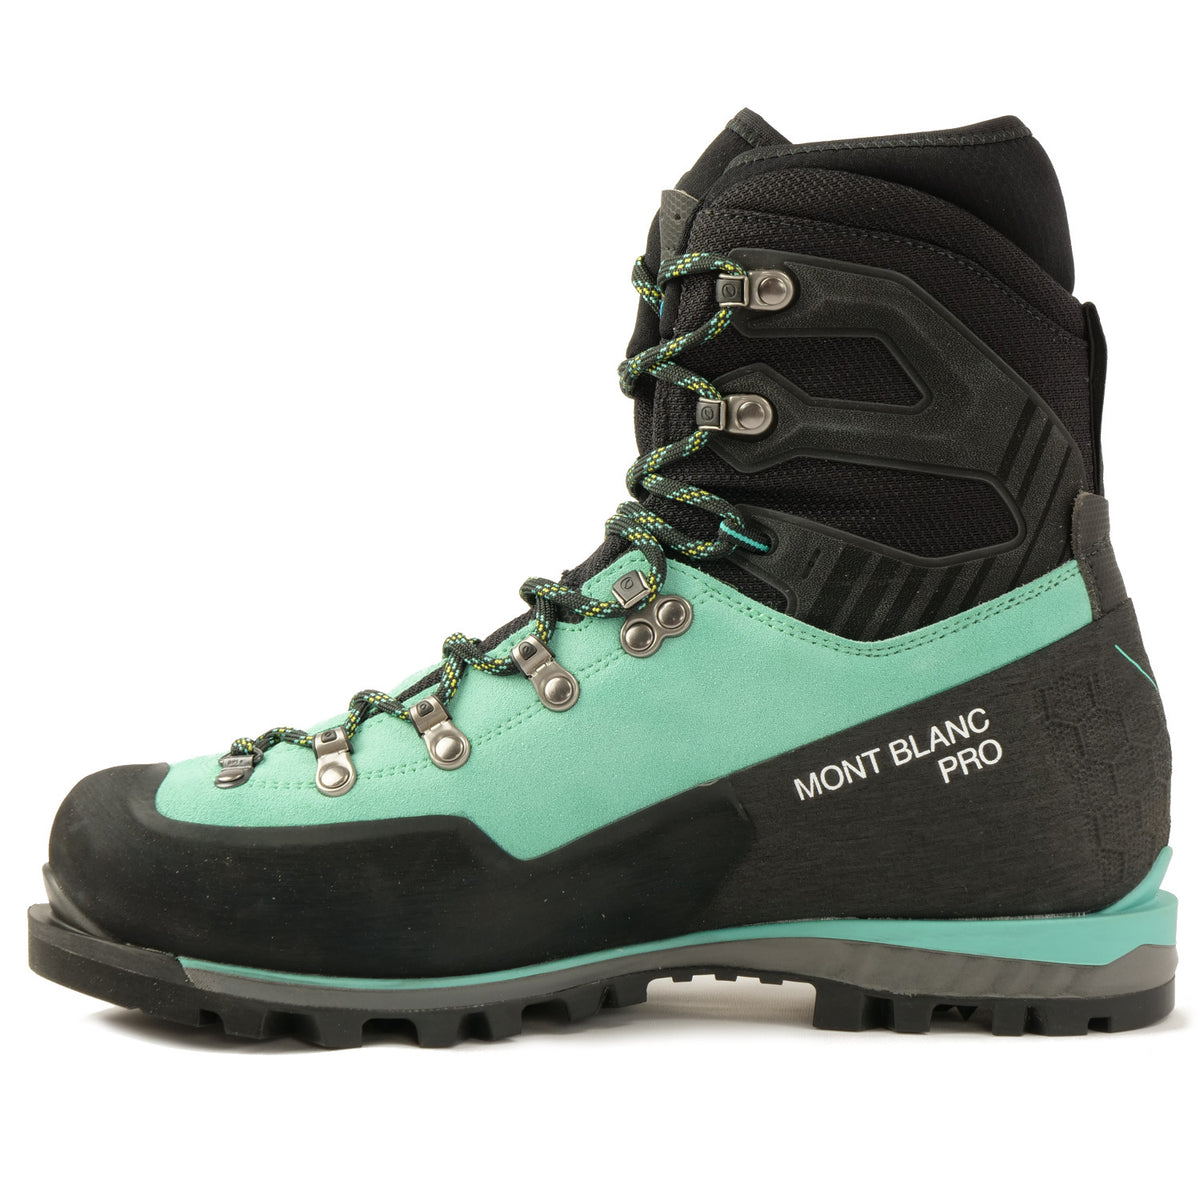 Side view of the Scarpa Mont Blanc Pro GTX Womens with Mint Green Perwanger outer and black rubber and flexible sock and Small Mont blanc pro written in white on the side of the shoe